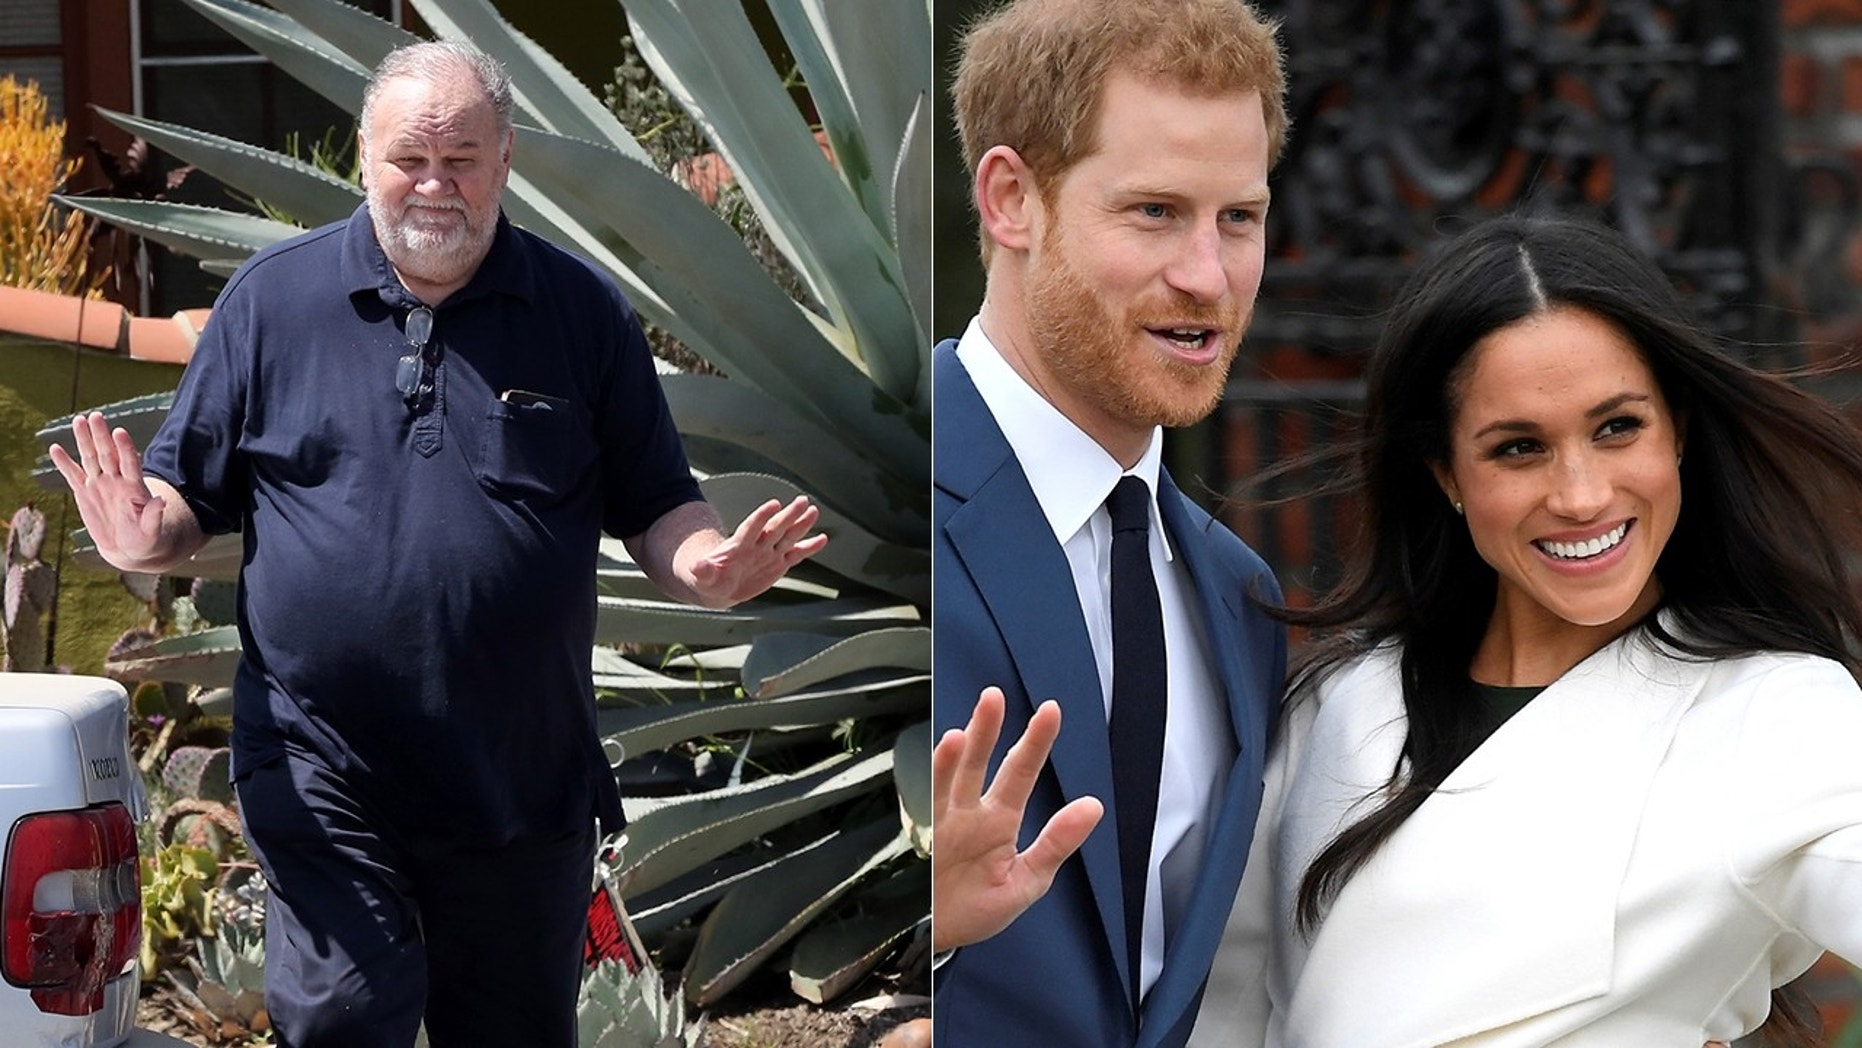 Meghan Markle's dad believes his daughter is 'terrified' adjusting to new life, calls royal family 'outdated' (foxnews.com)